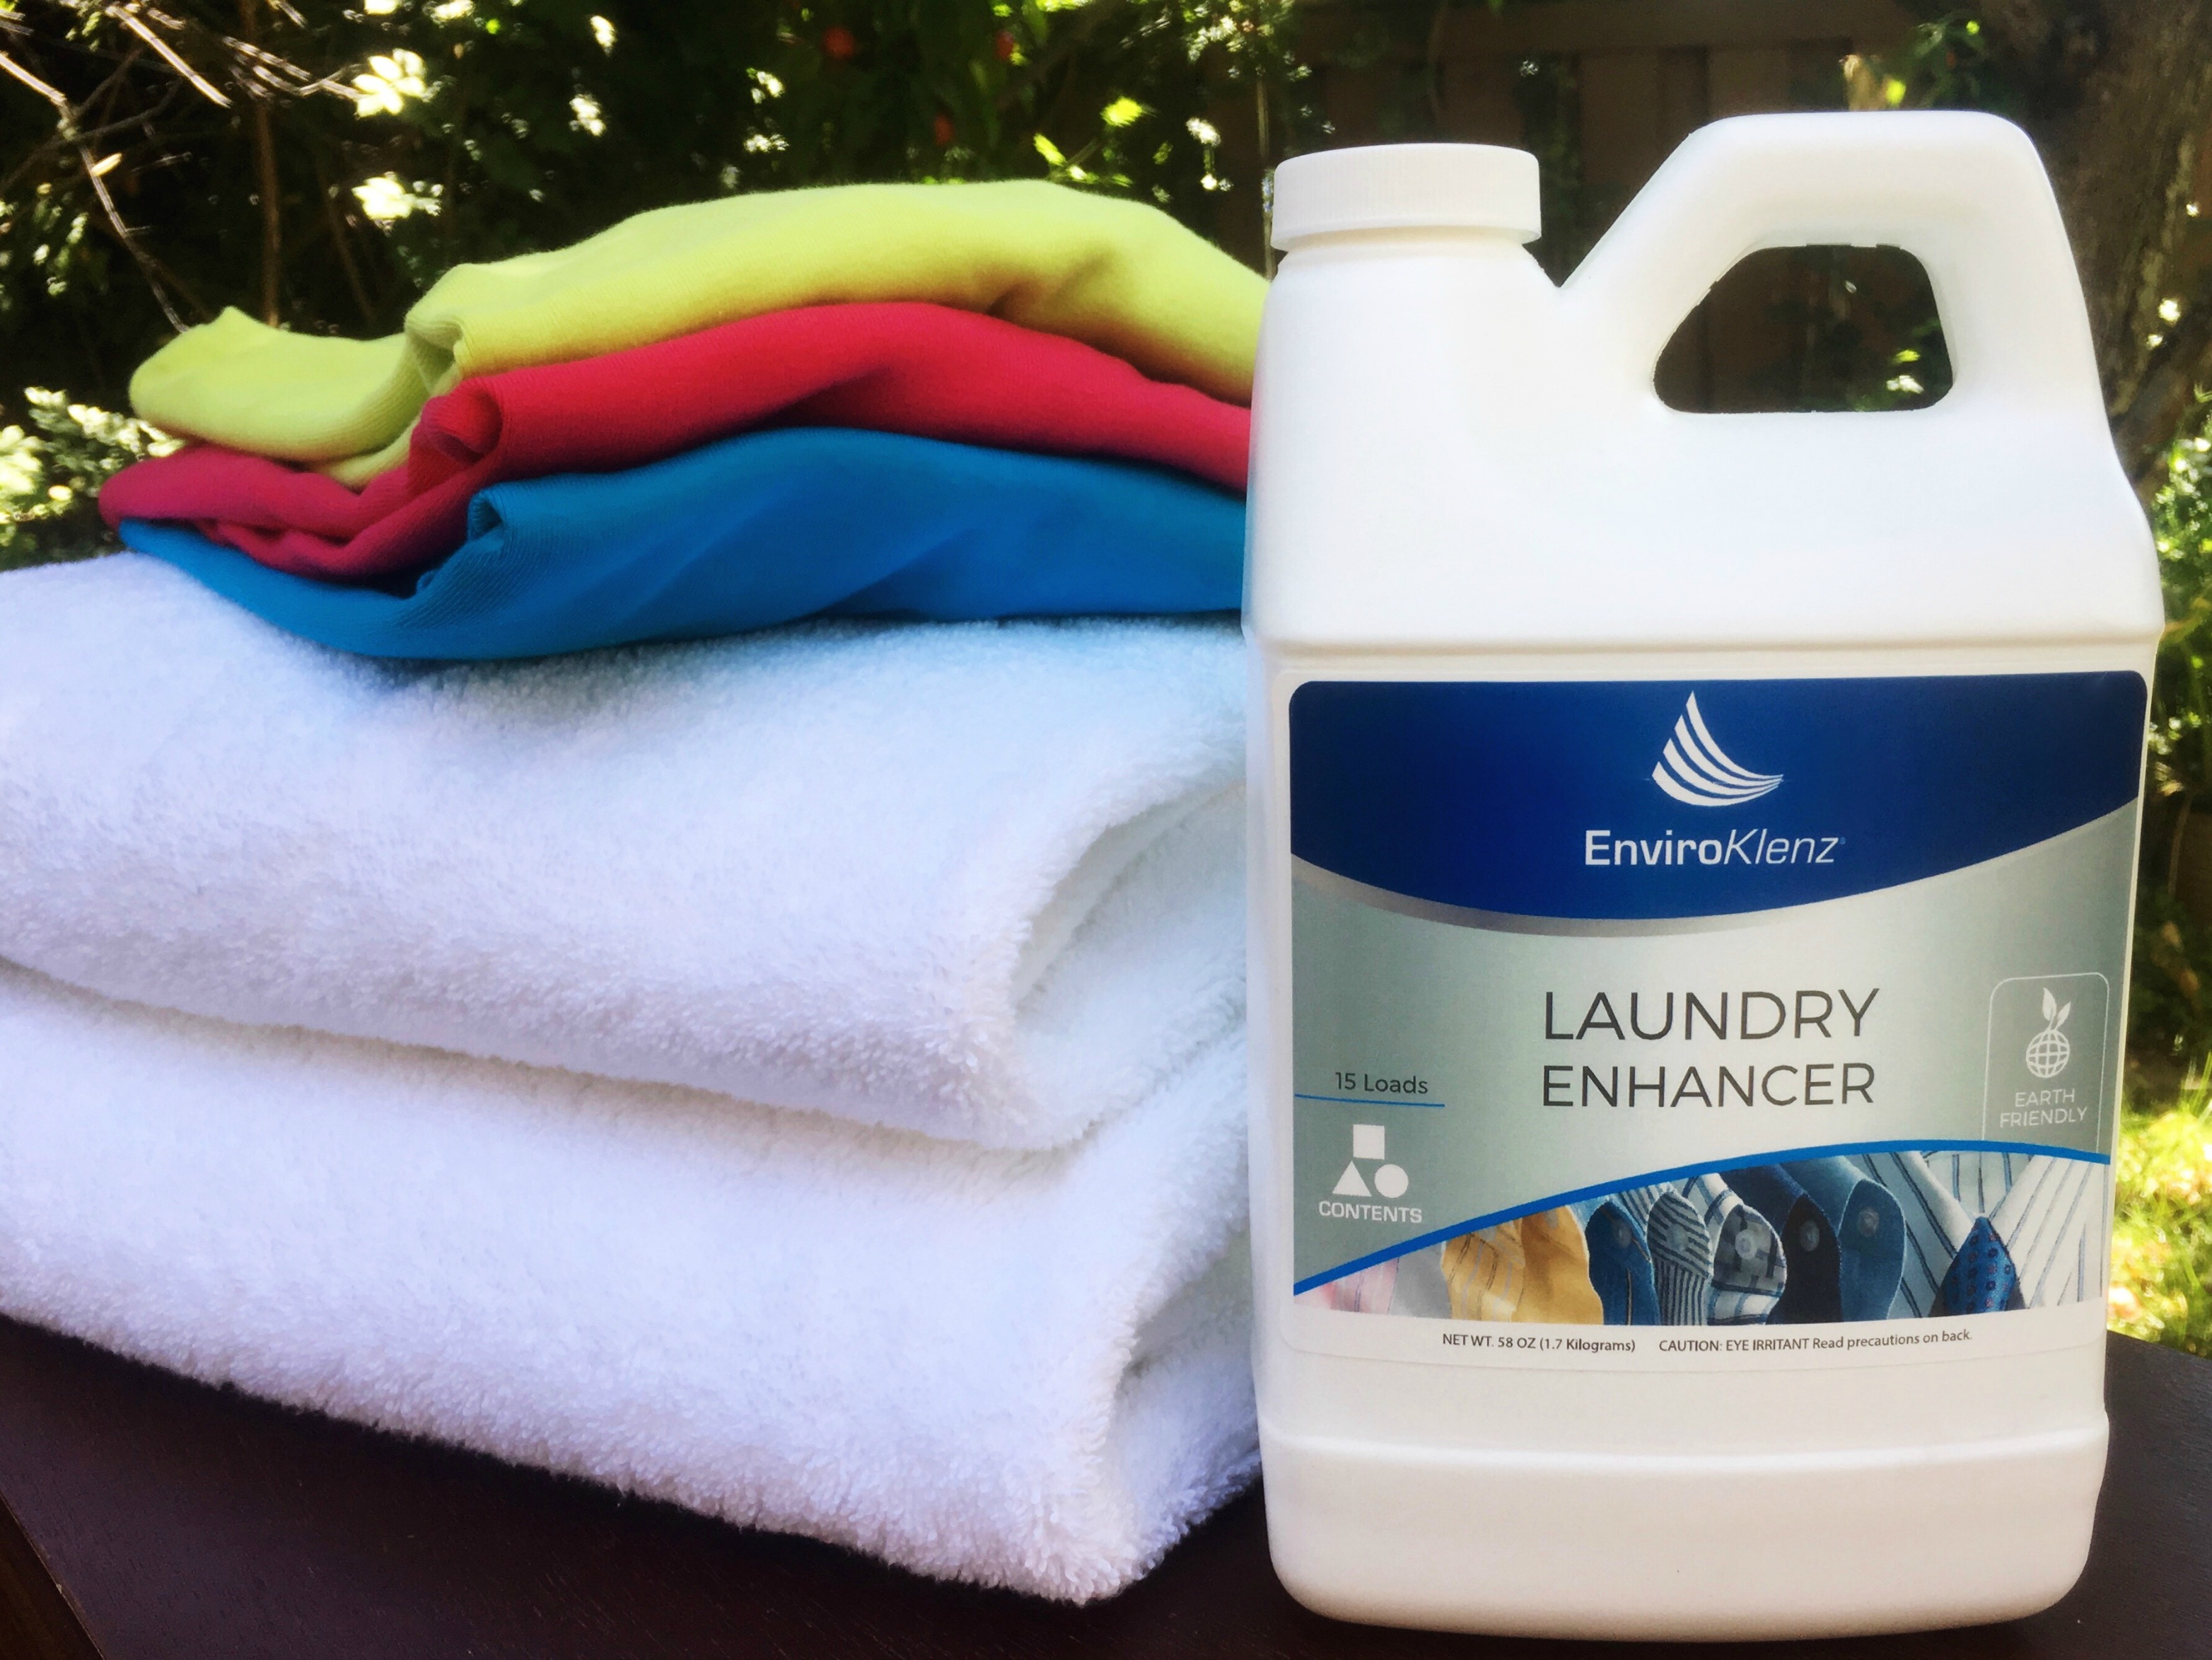 EnviroKlenz Laundry Enhancer for Multiple Chemical Sensitivity